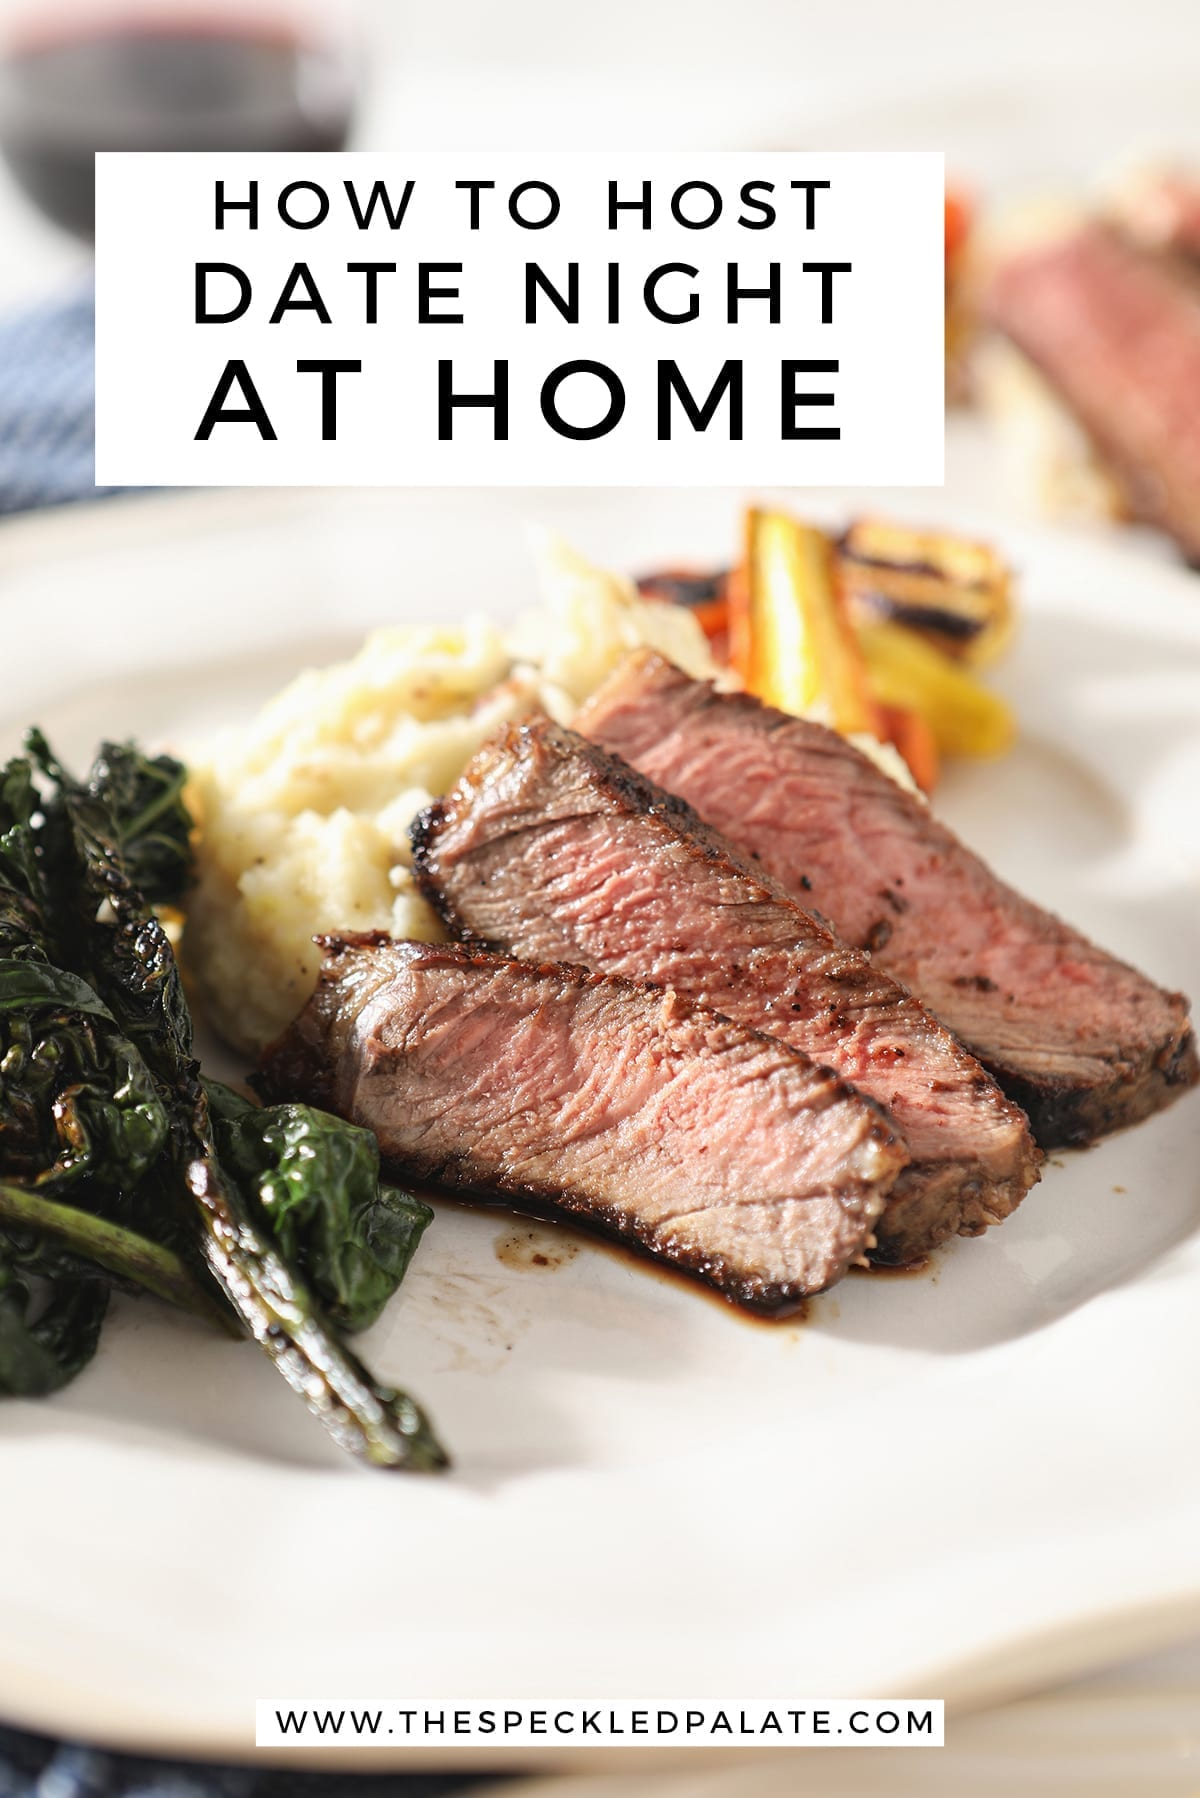 Close up of sliced ribeye on a plate with potatoes, greens and carrots with the text 'how to host date night at home'